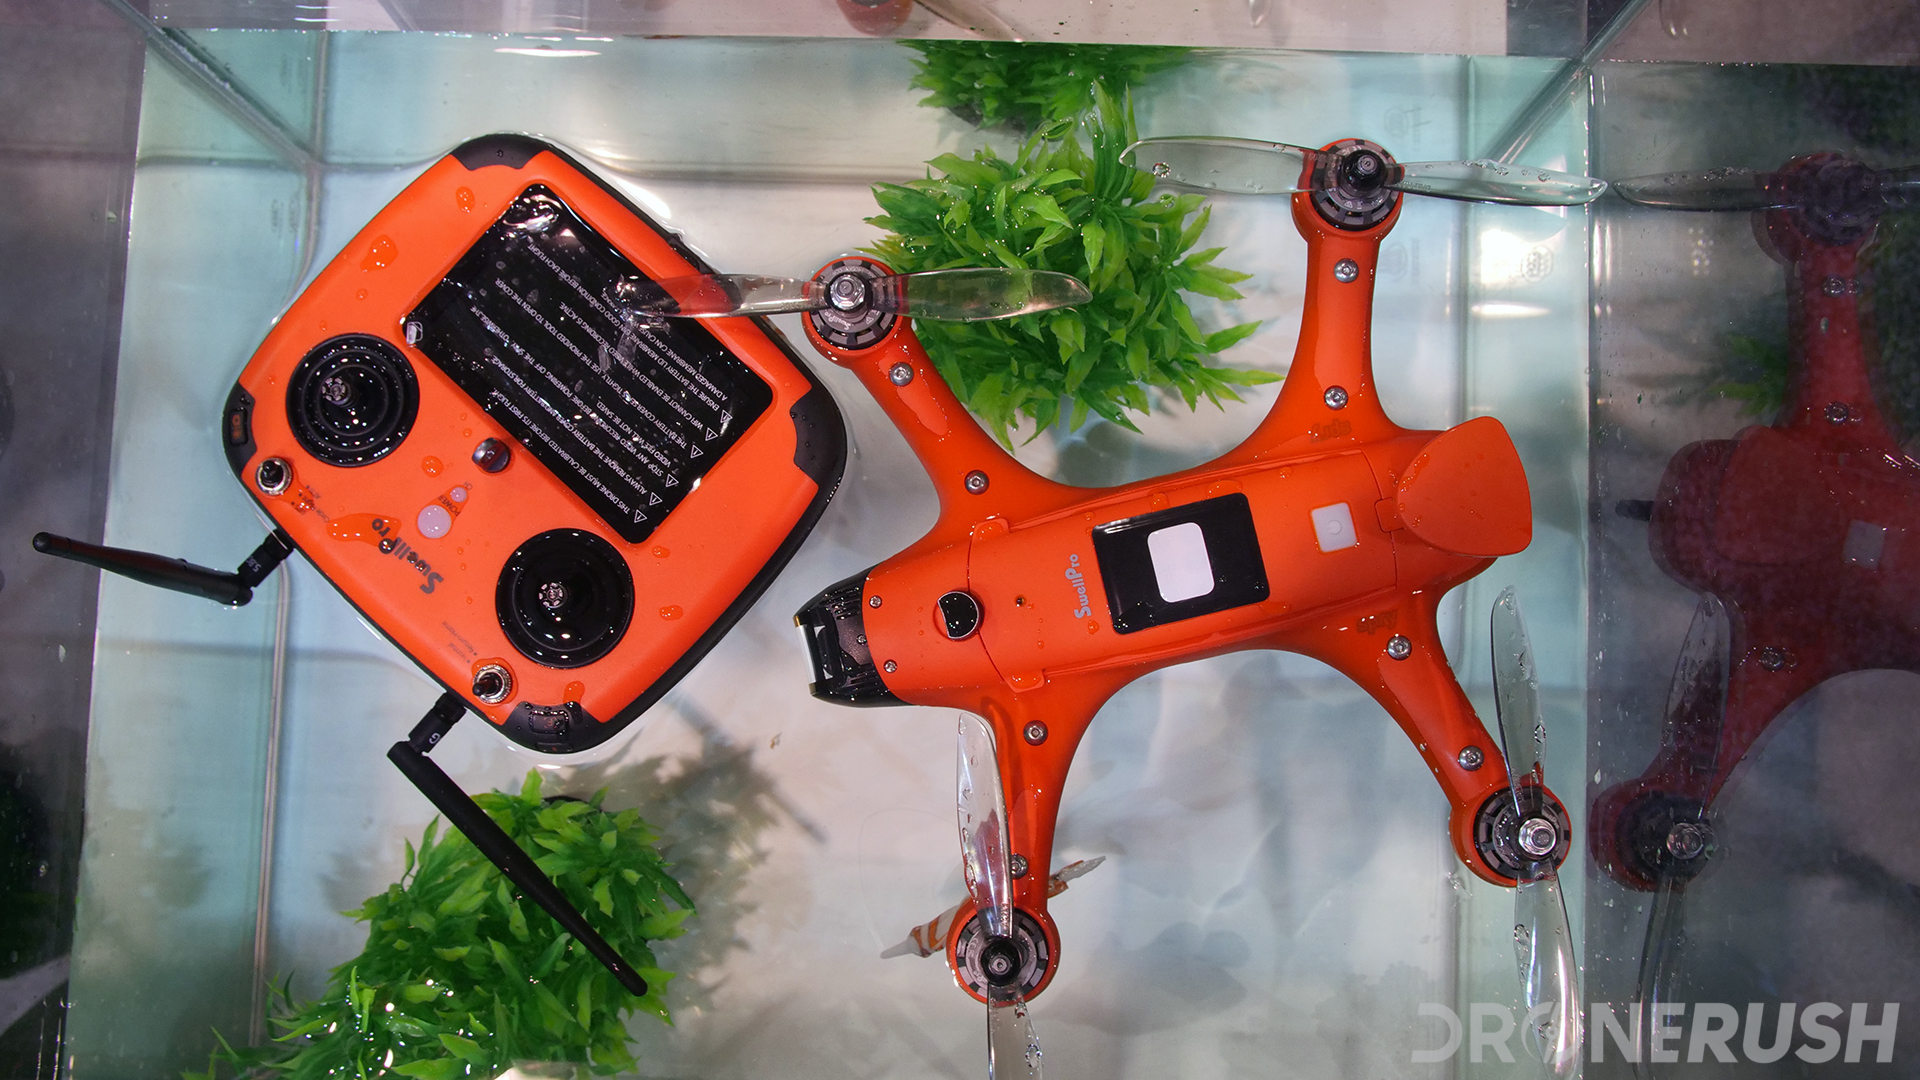 Swellpro Spry waterproof drone at CES 2019